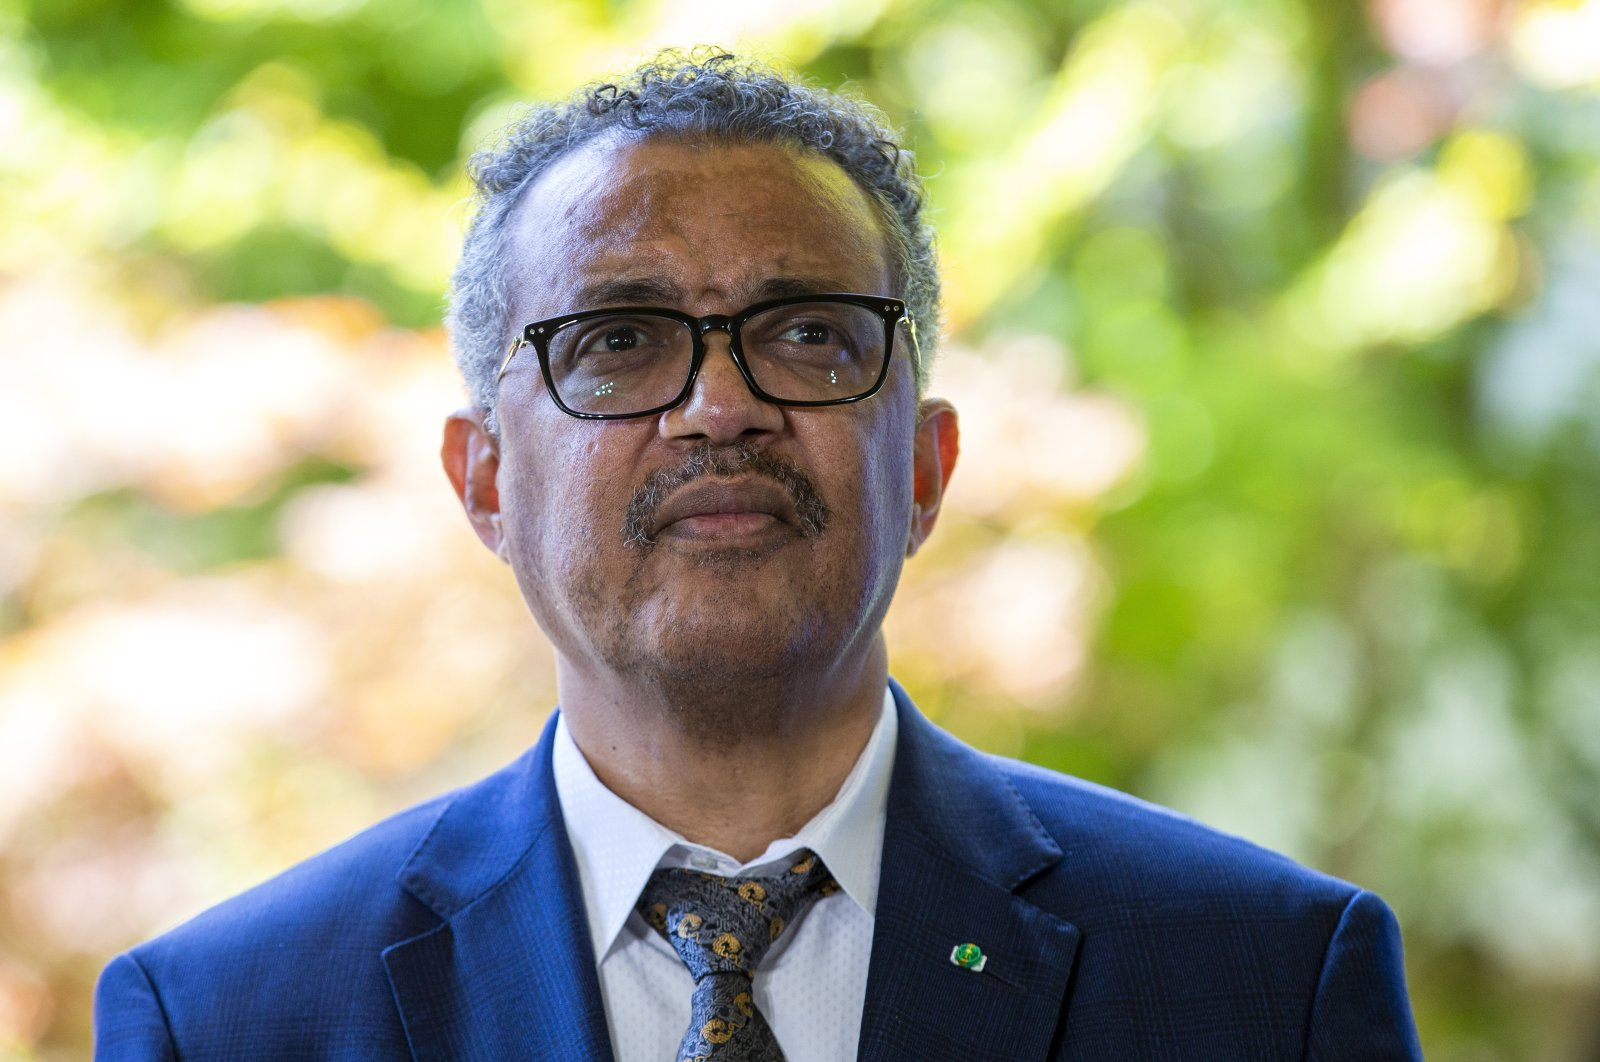 Tedros Adhanom Ghebreyesus, Director General of the World Health Organization (WHO), attends a press conference, at the WHO headquarters in Geneva, Switzerland, Thursday, June 25, 2020. (AP Photo)